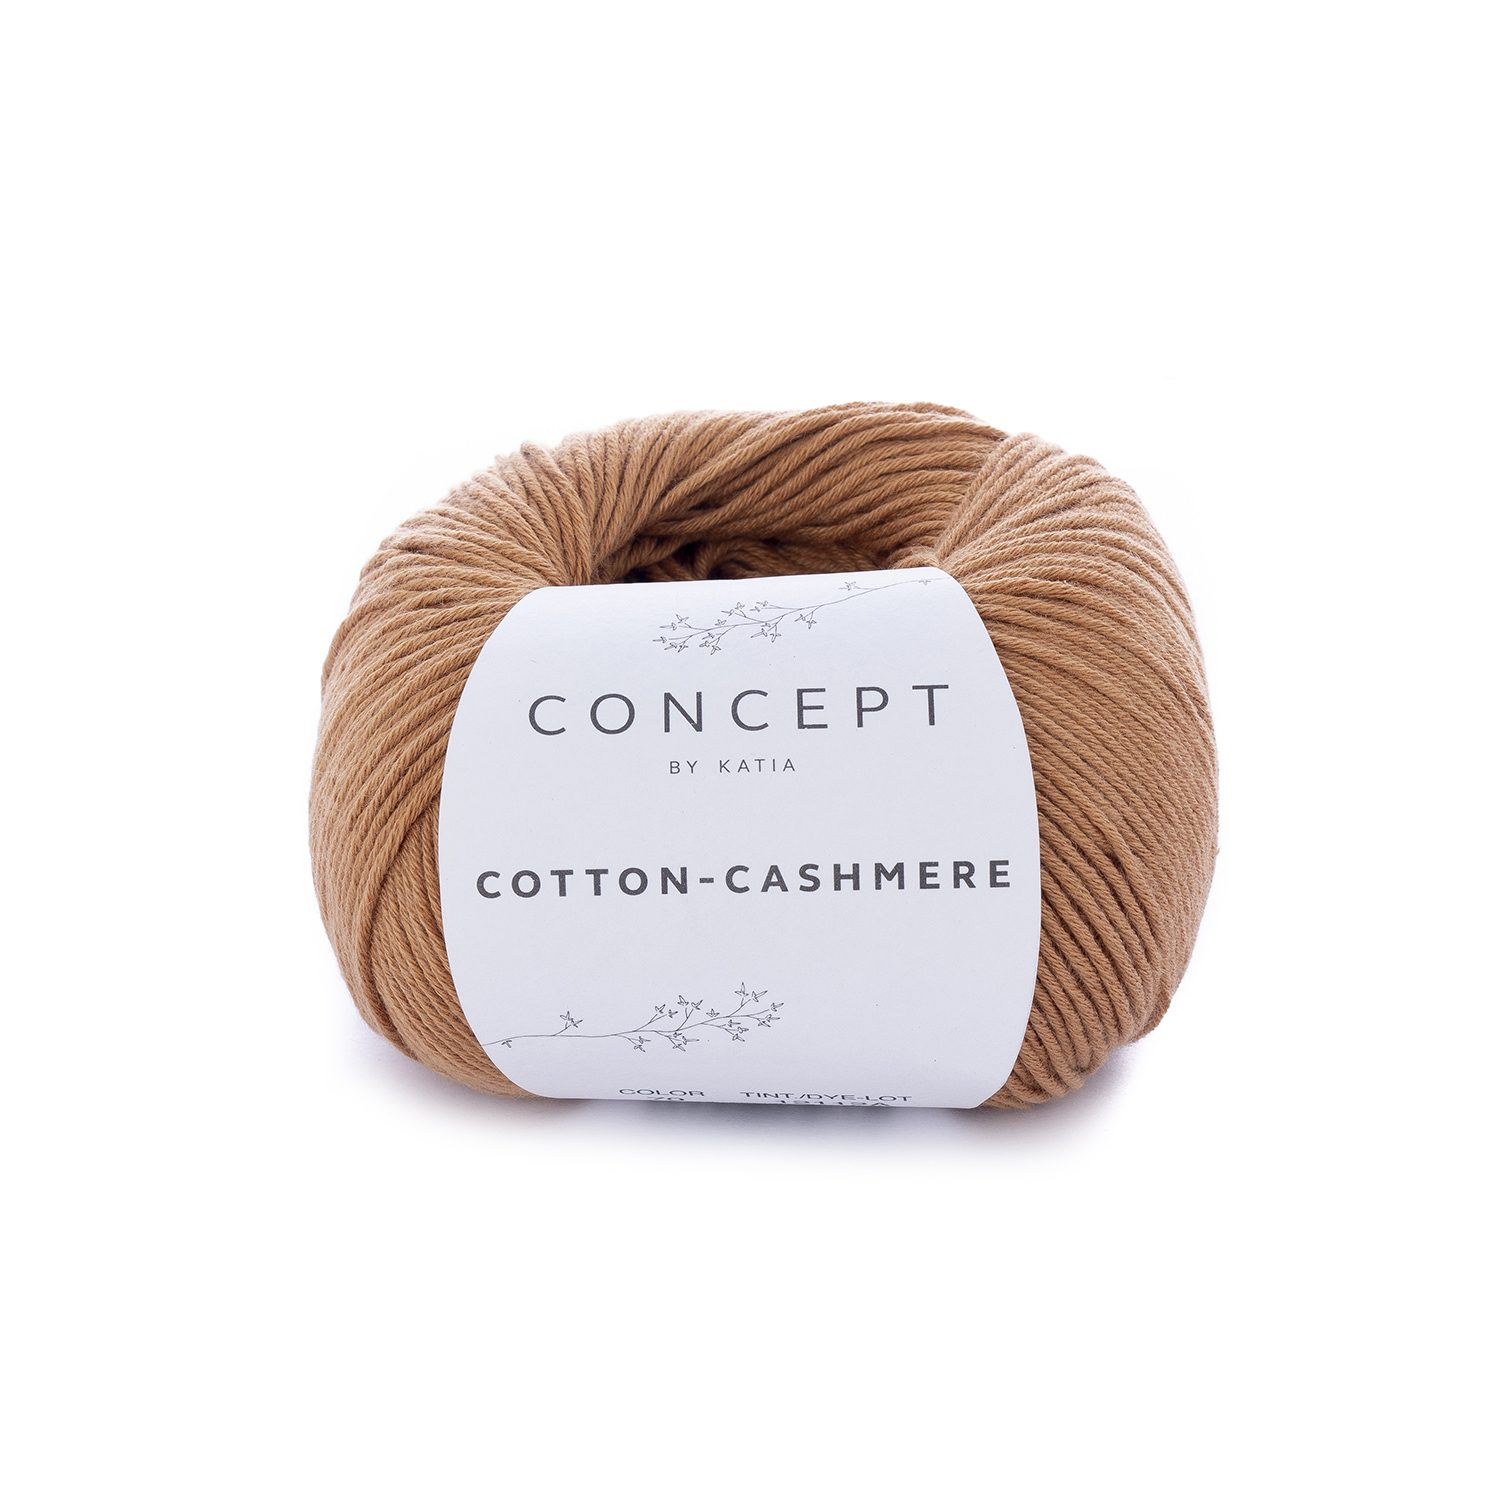 yarn-wool-cottoncashmere-knit-cotton-cashmere-brown-all-katia-70-g